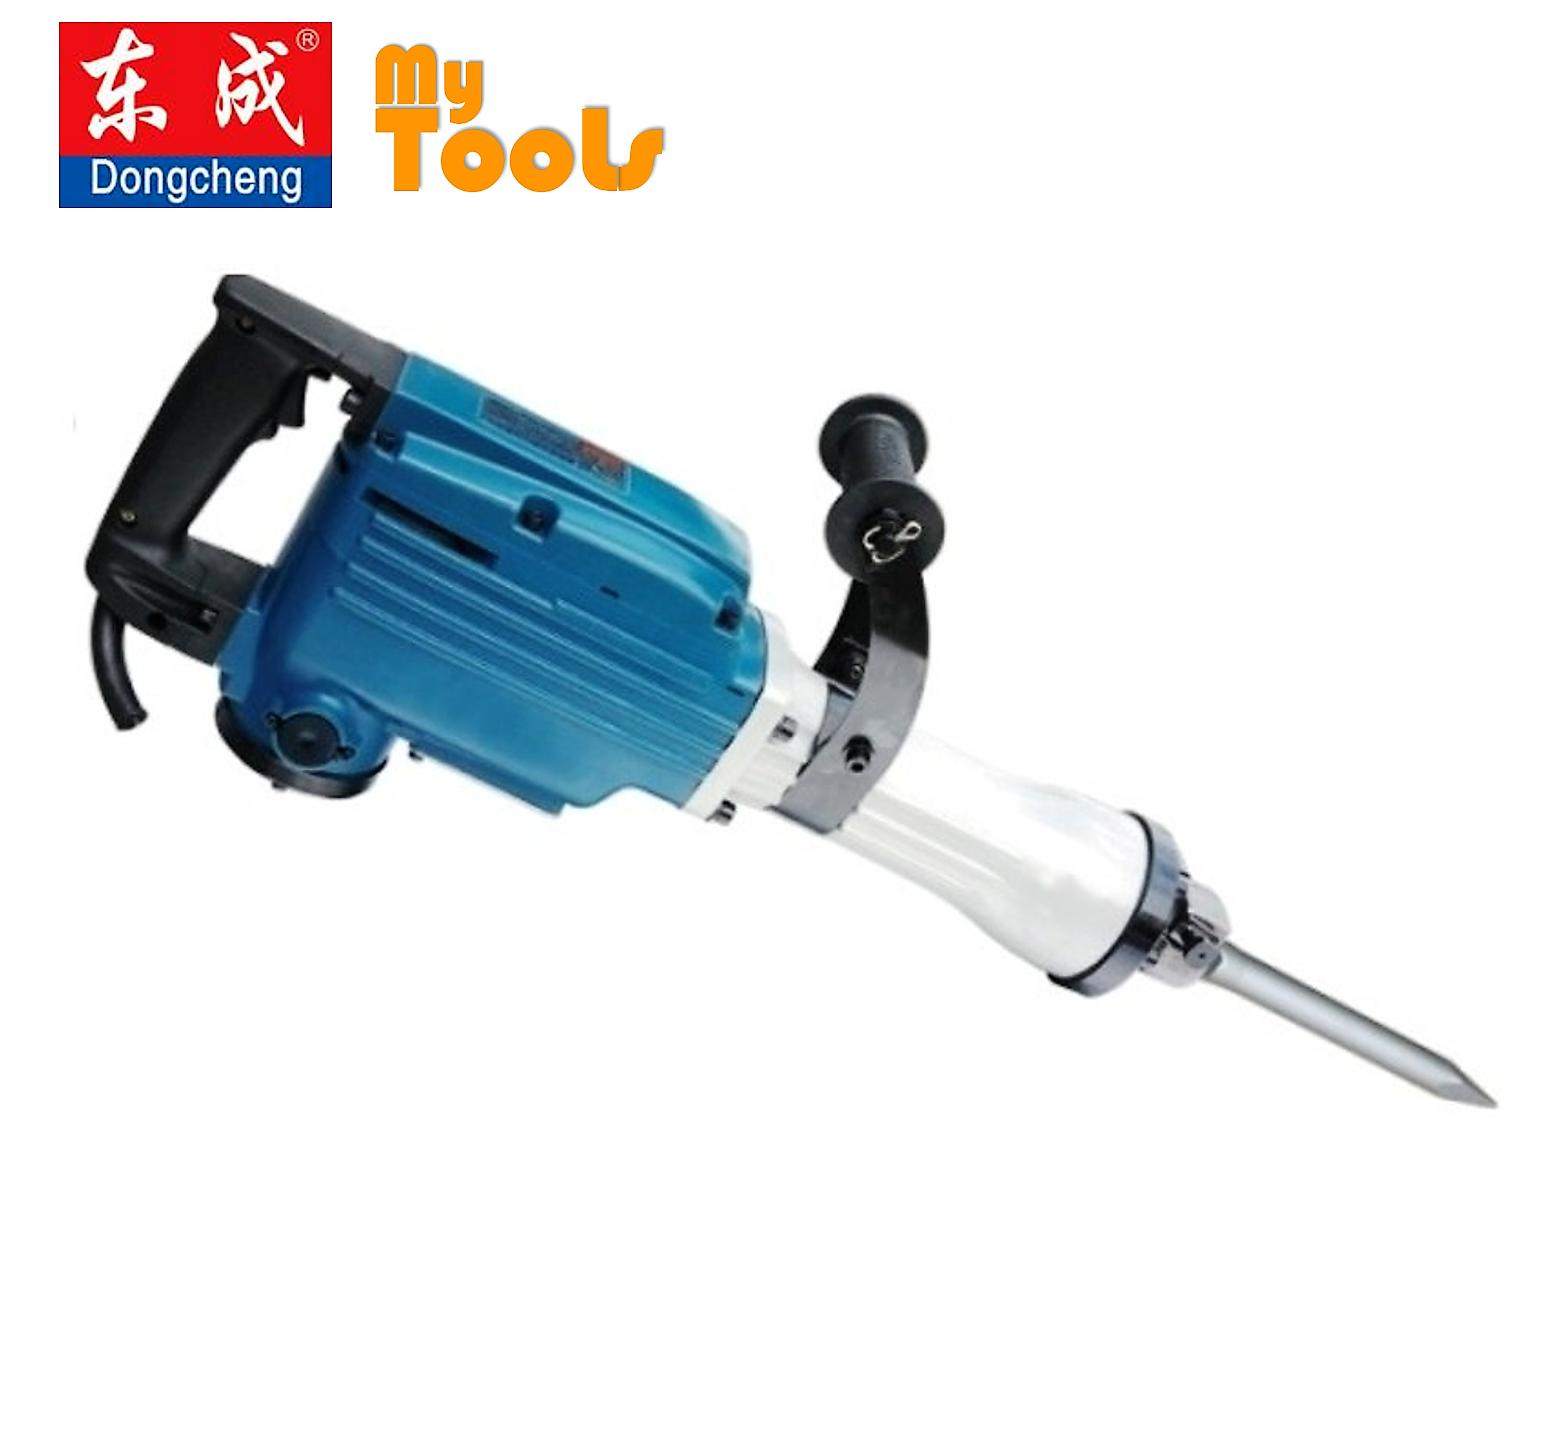 DongCheng Z1G-FF-15 1240W Demolition Breaker Hammer DZG15 (6 month Warranty)